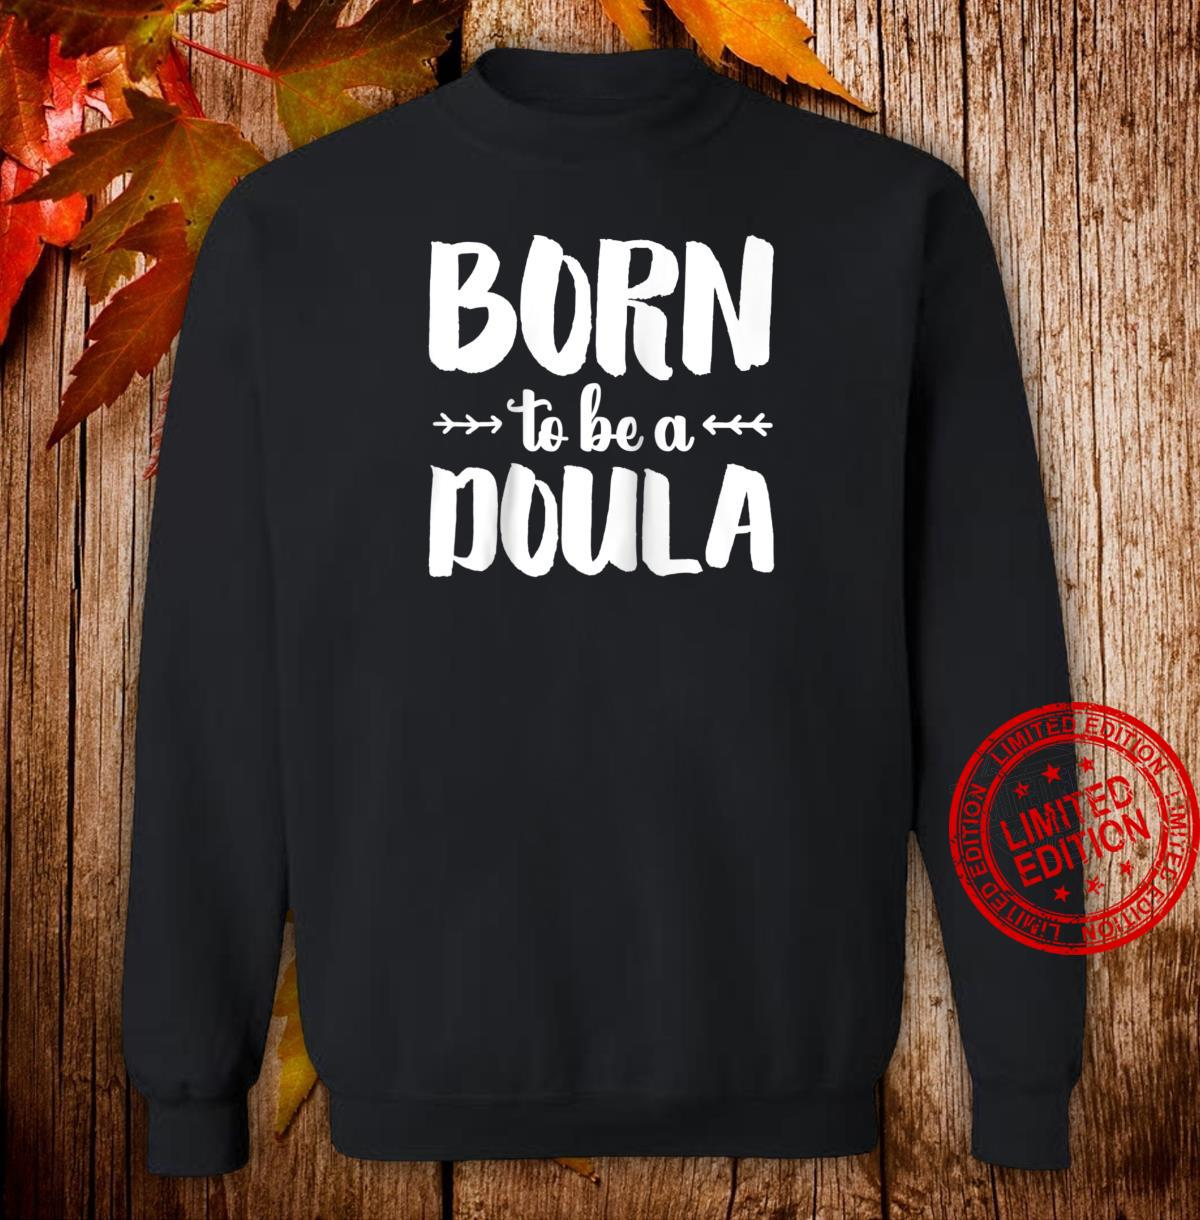 'Born to be a Doula' Birth Doula Shirt sweater